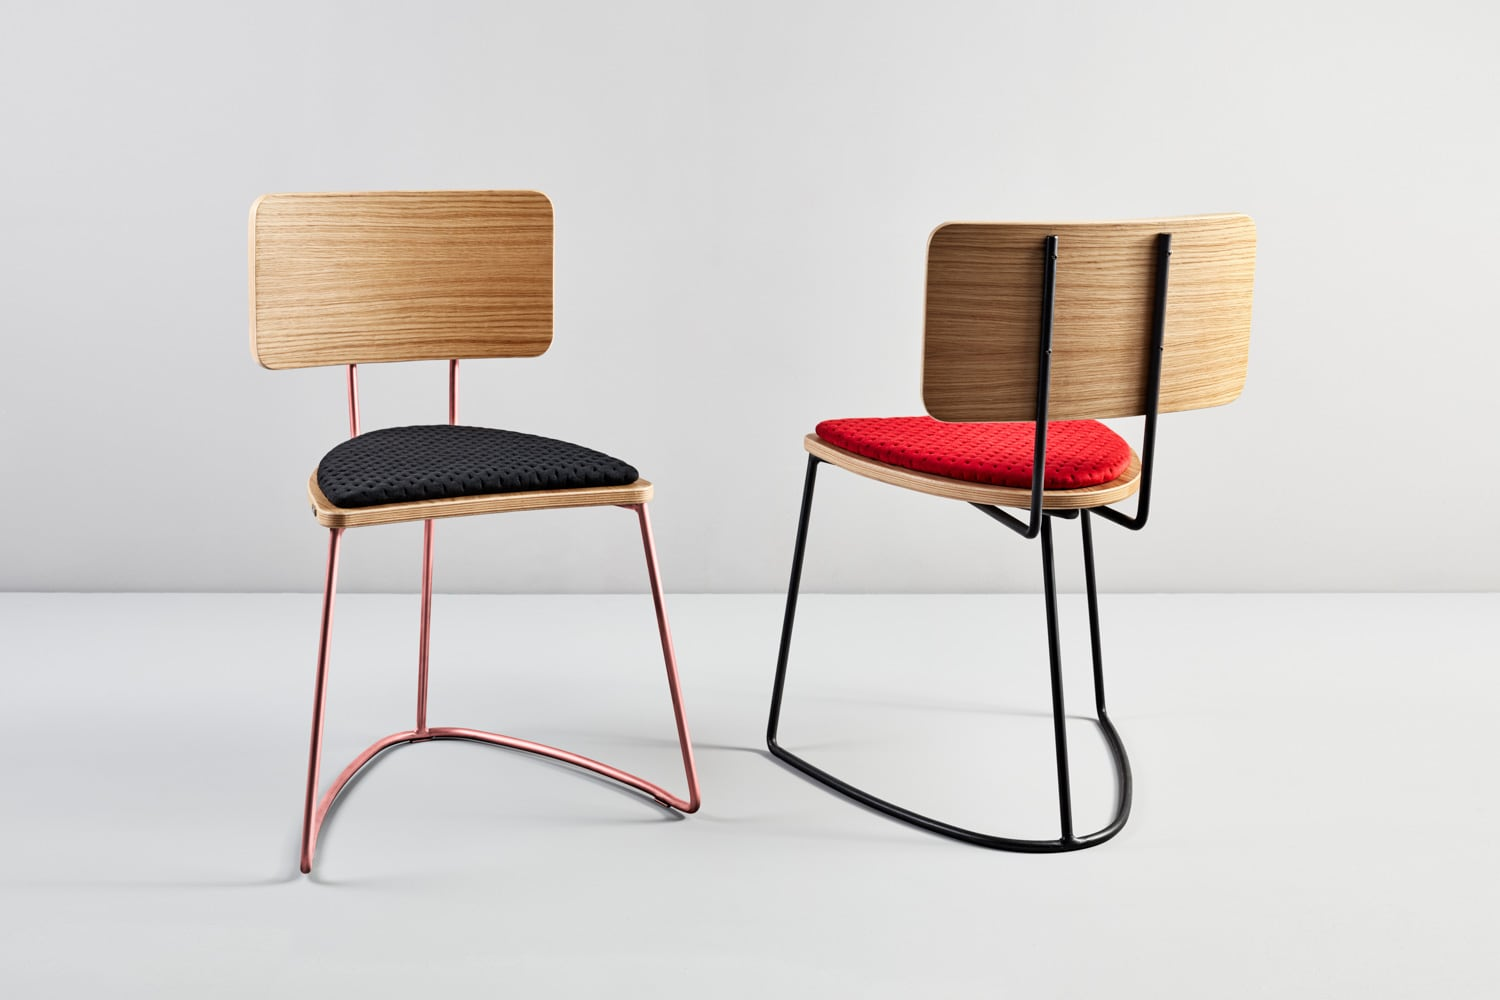 bomerang-chair-hospitality-design-furniture-product